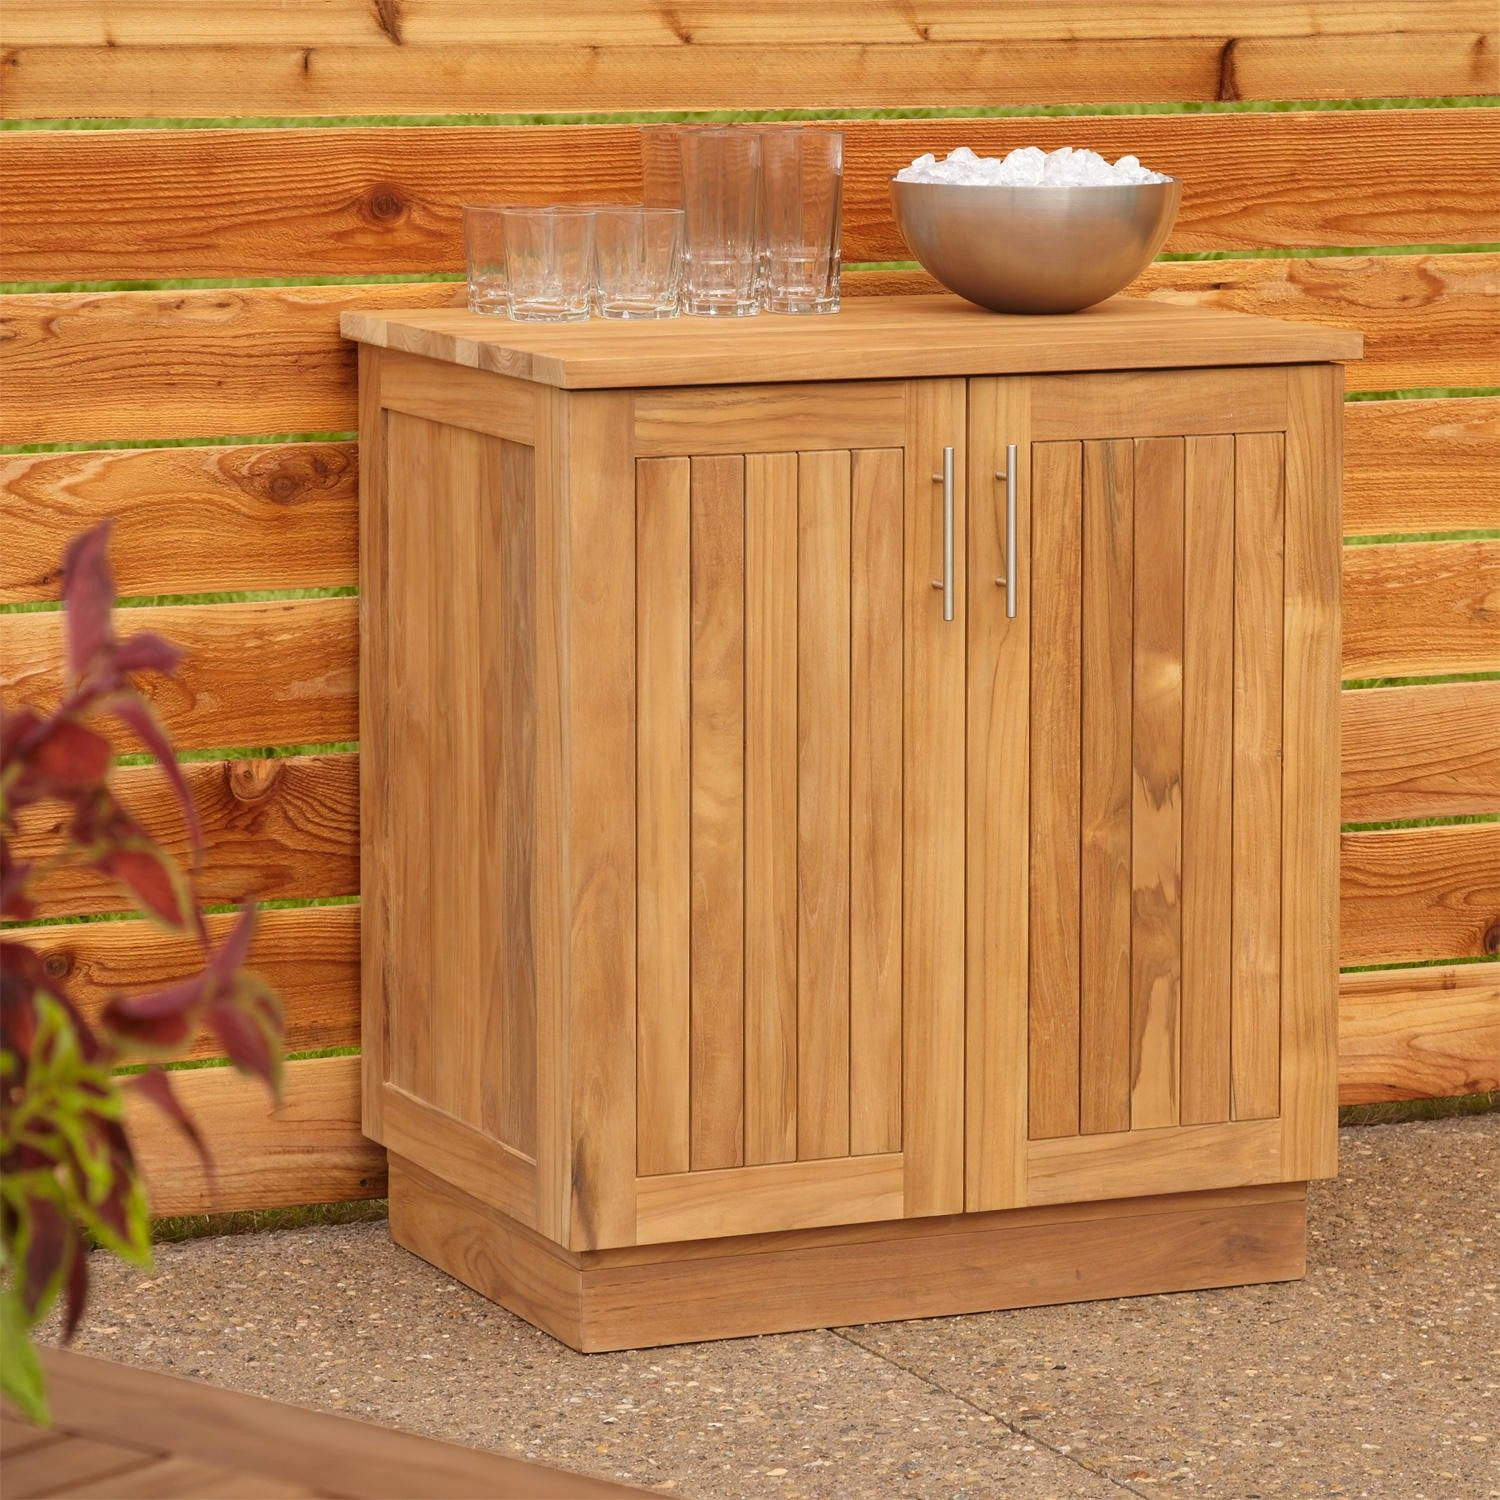 Enjoy More Storage When You Entertain Outdoors With The Artois Teak Cabinet This Useful Offers Ious Room For Stowing Extra Drinks